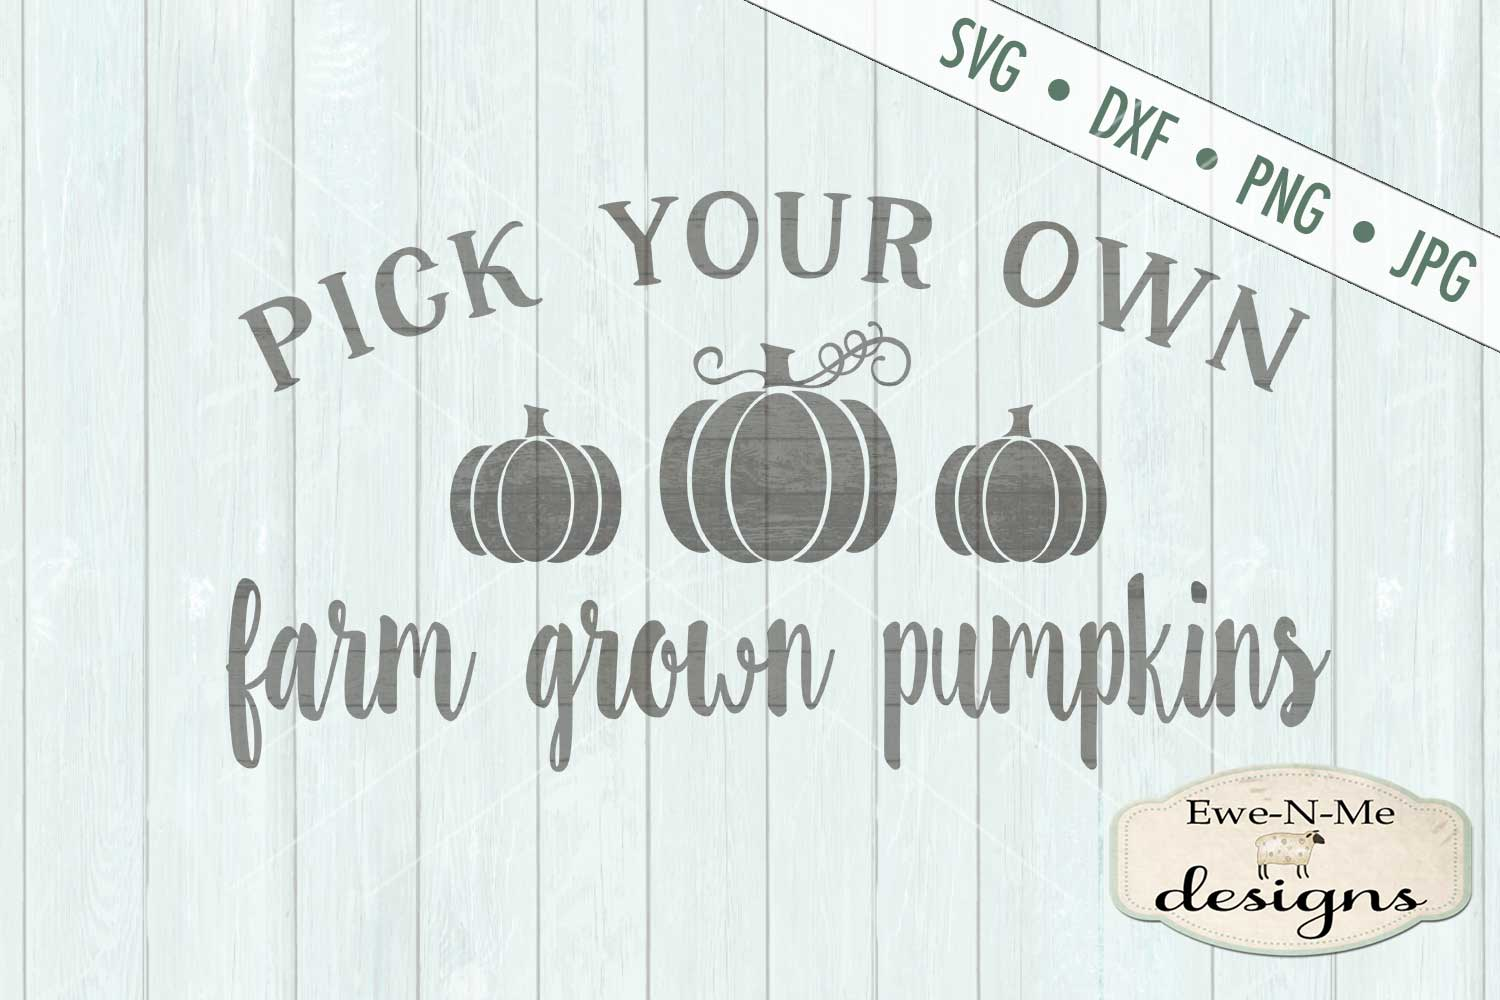 Pick Your Own Farm Grown Pumpkins SVG DXF Files example image 2